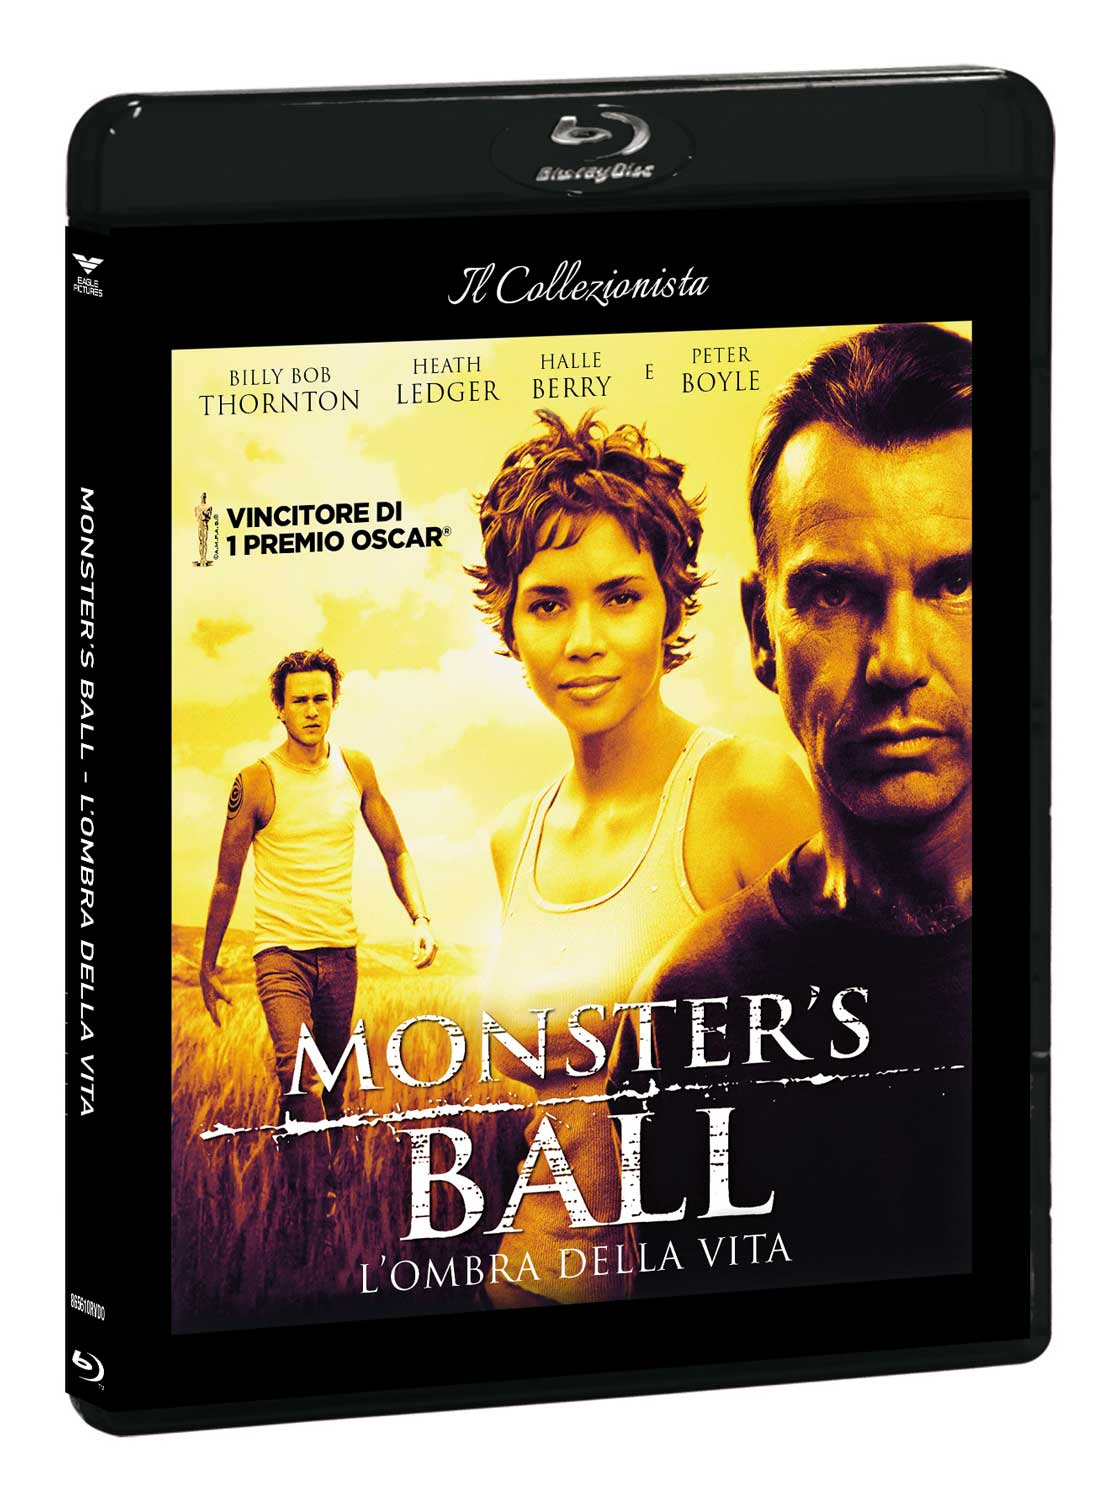 MONSTER'S BALL - L'OMBRA DELLA VITA (DVD)